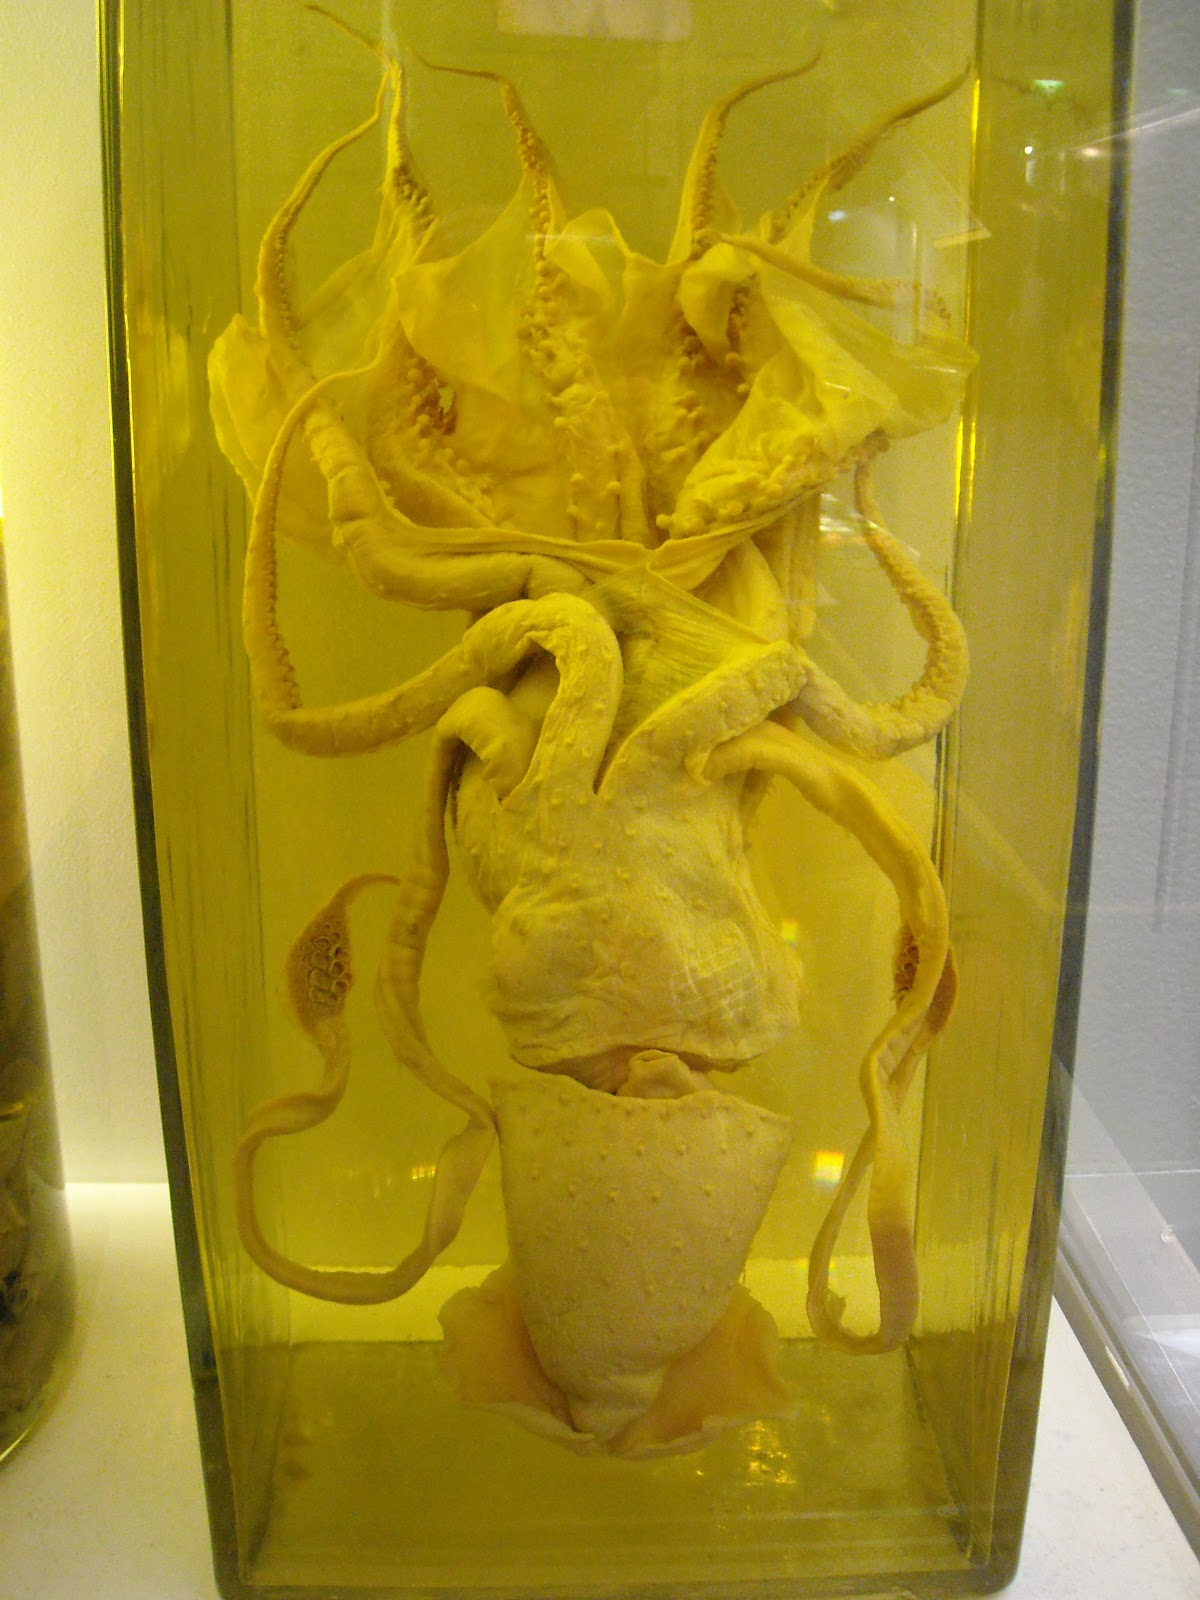 Squid In A Jar